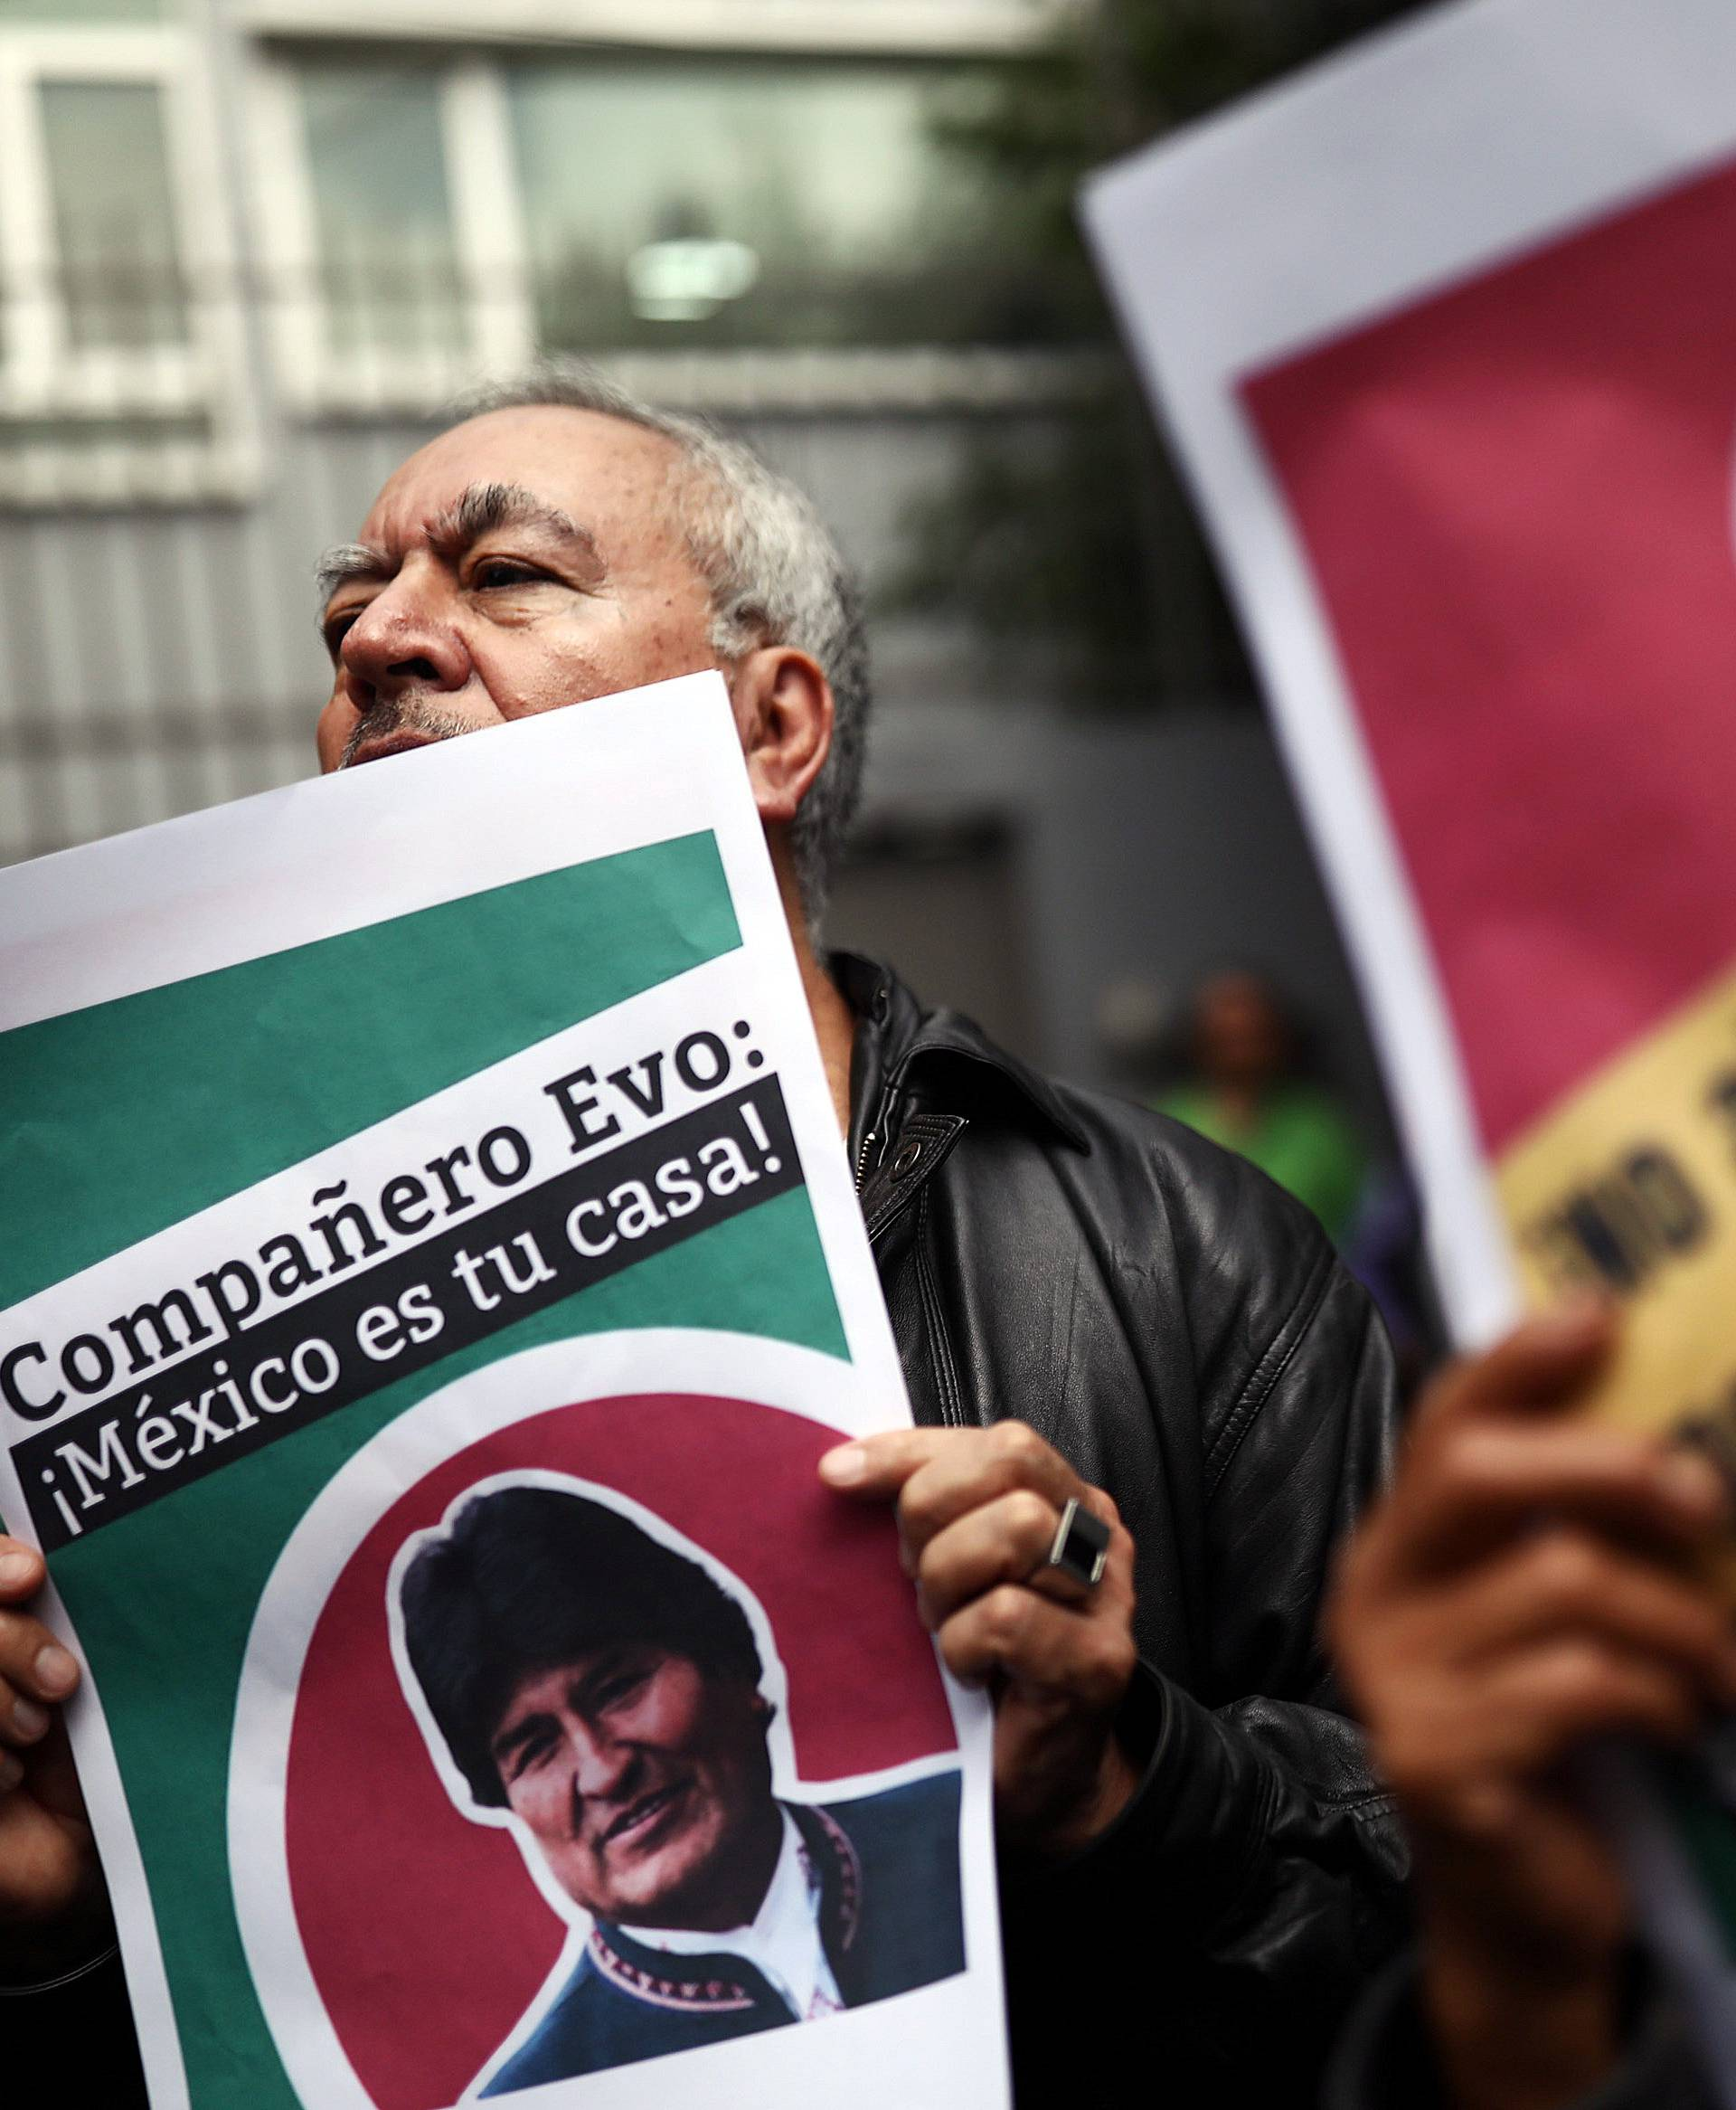 Demonstration in support of Bolivian President Evo Morales in Mexico City